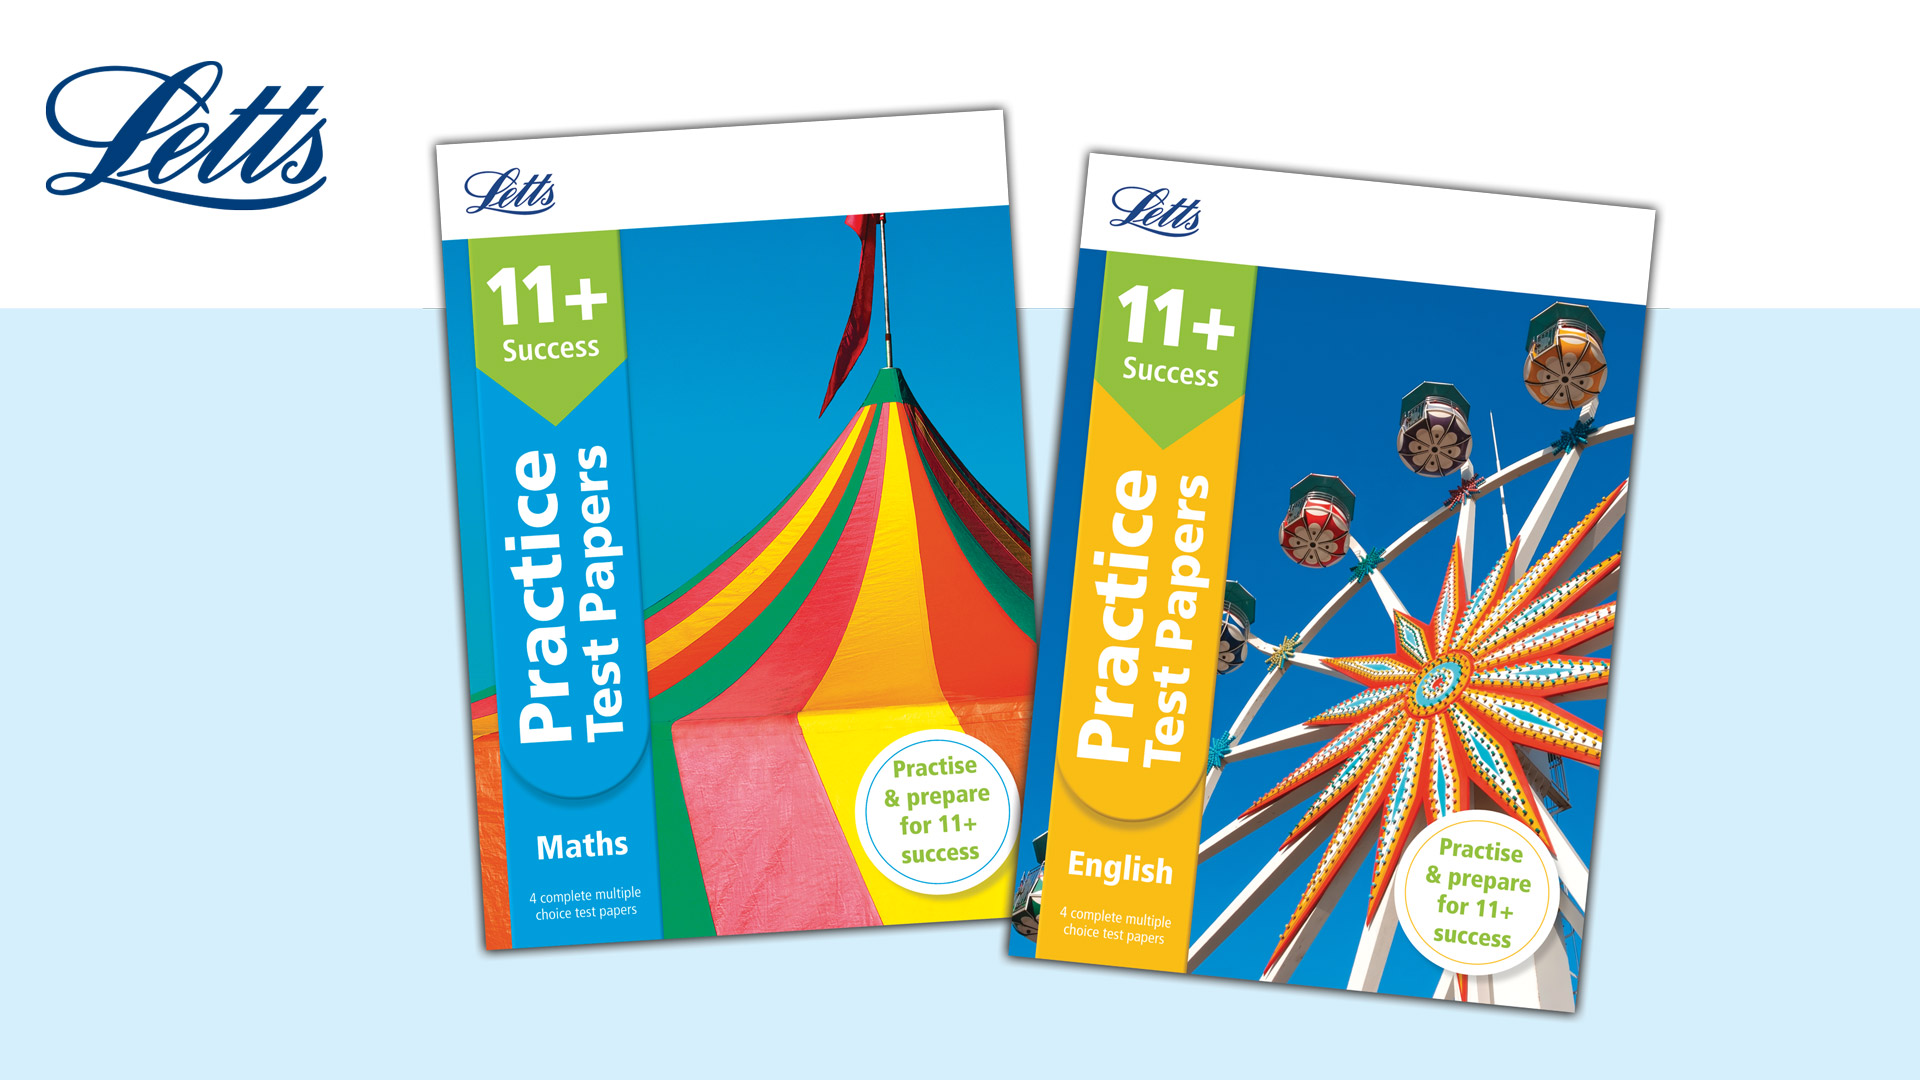 Claim Your Free Letts Revision Book!